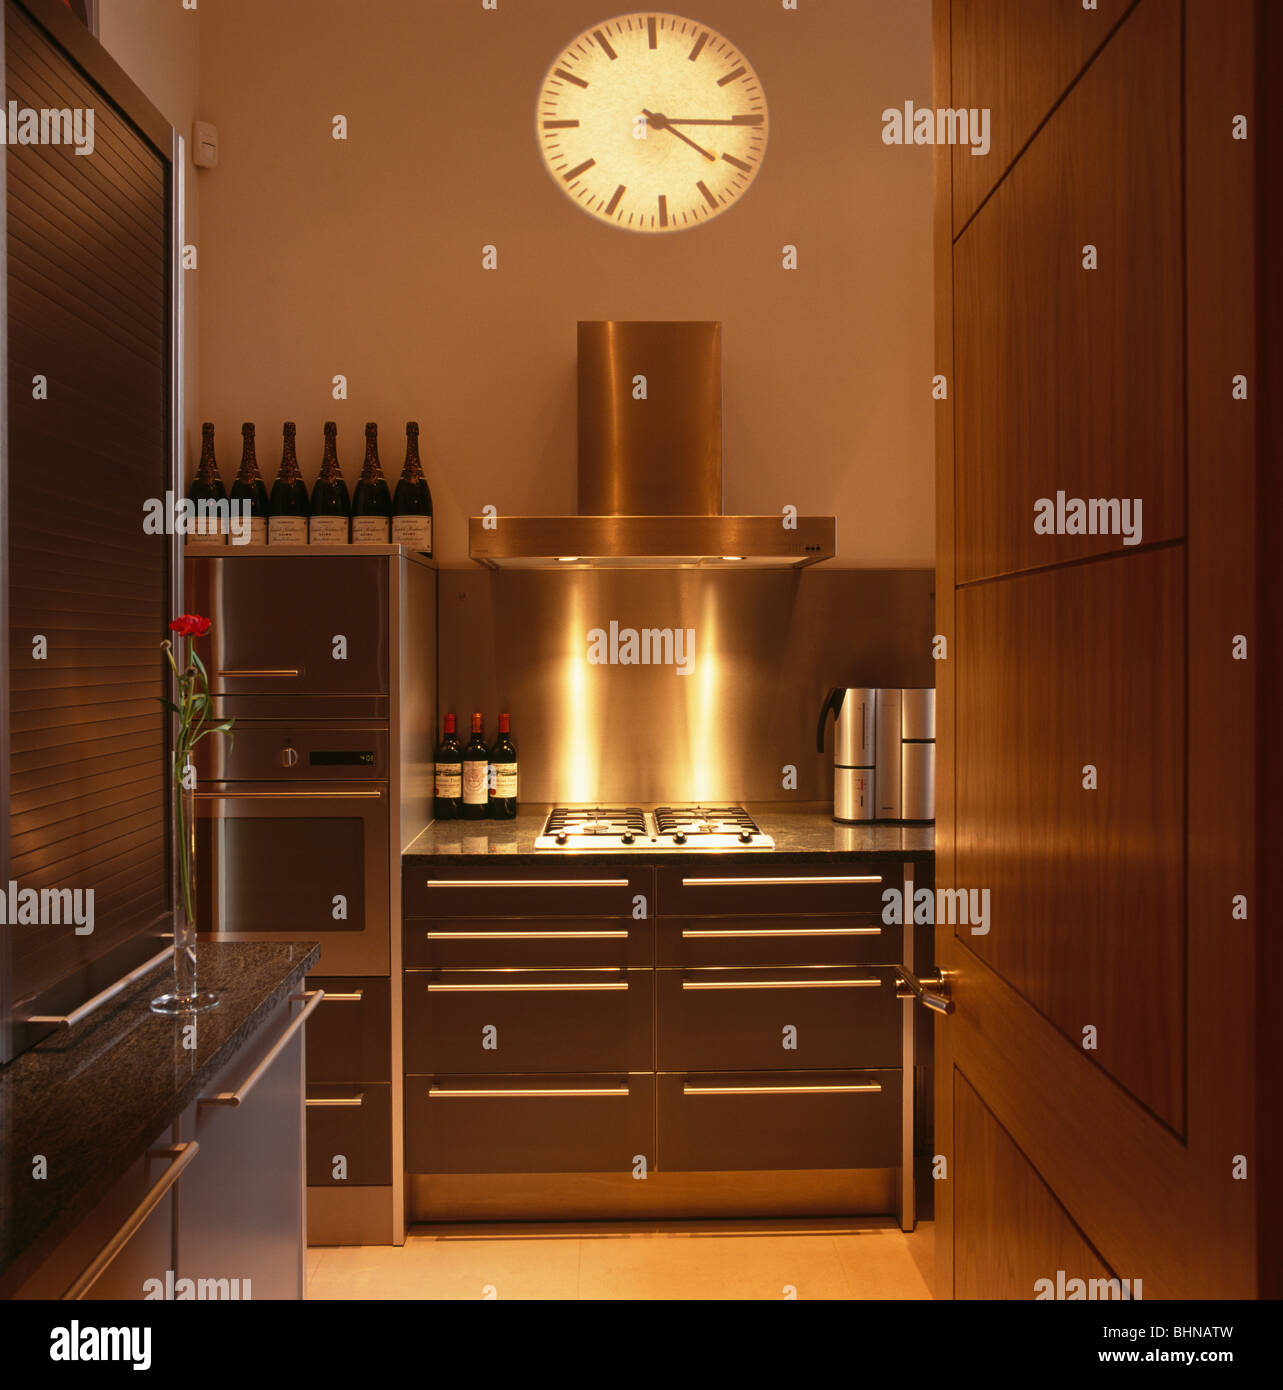 Hologram Clock On Wall Above Stainless Steel Extractor Fan And Range Stock Photo Alamy